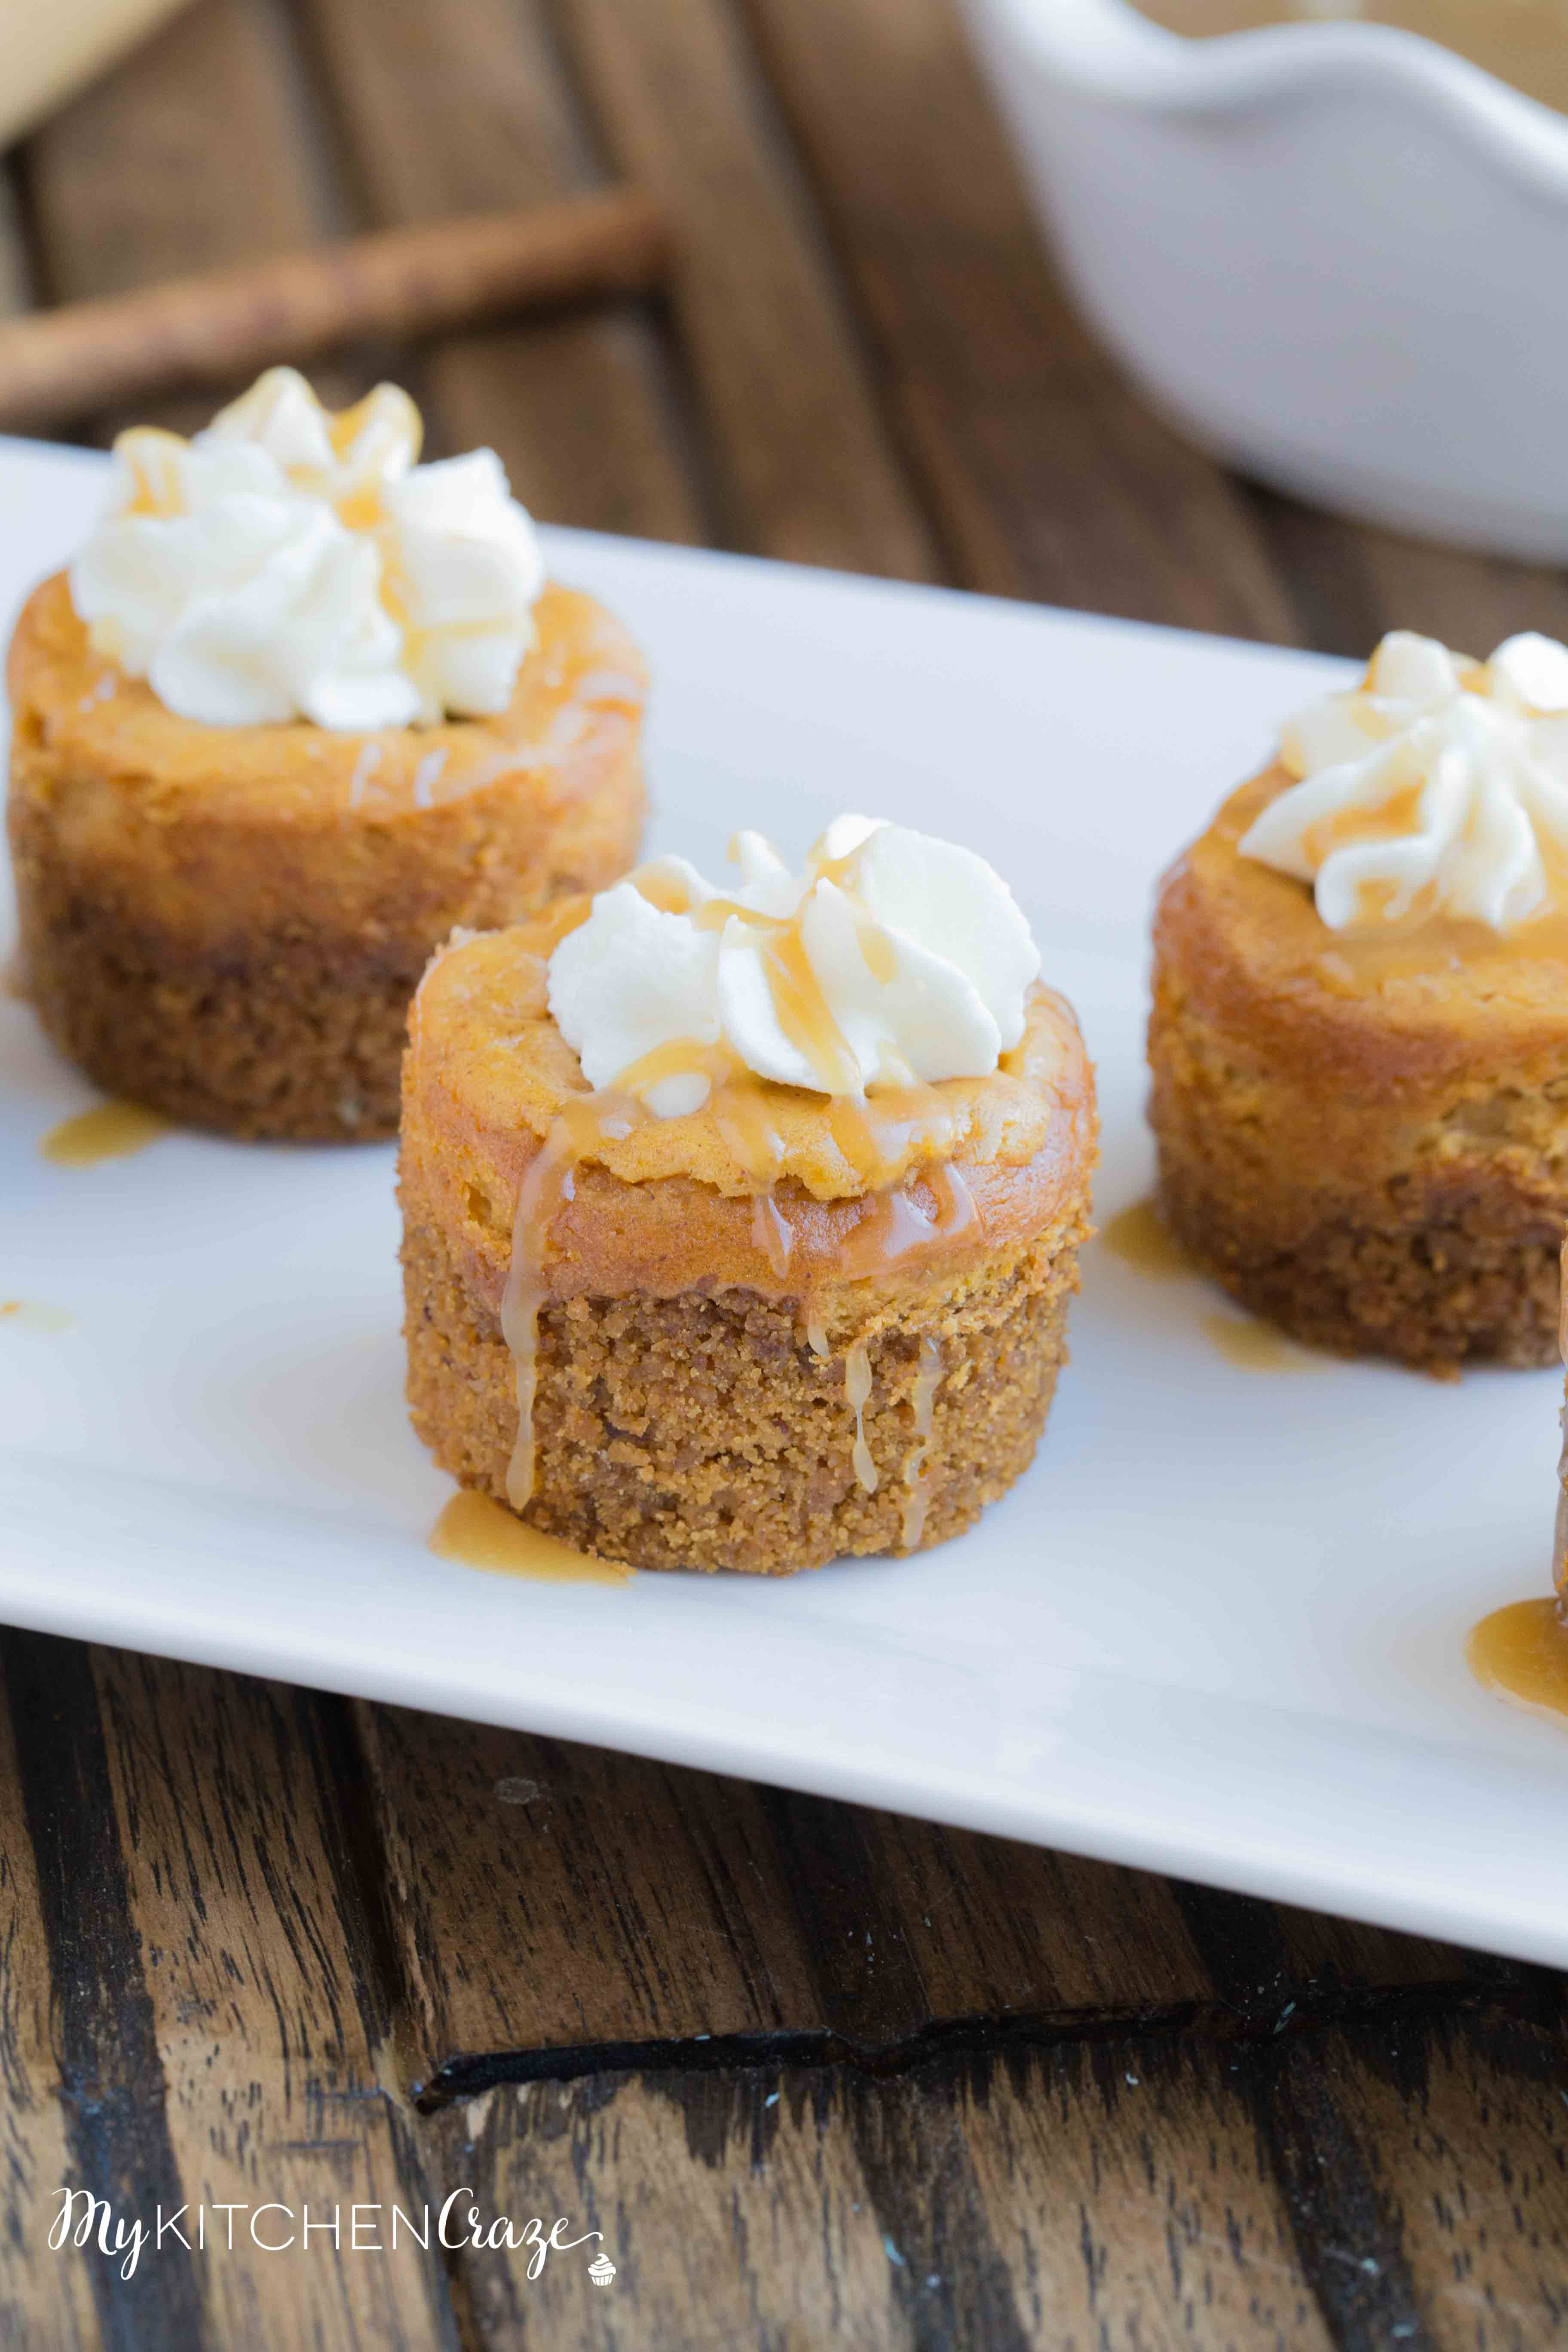 Mini Pumpkin Cheesecakes are the perfect fall dessert! Creamy cheesecake has the perfect hint of pumpkin, topped with homemade whipped cream and caramel sauce. It doesn't get much better than these cute mini cheesecakes this season!